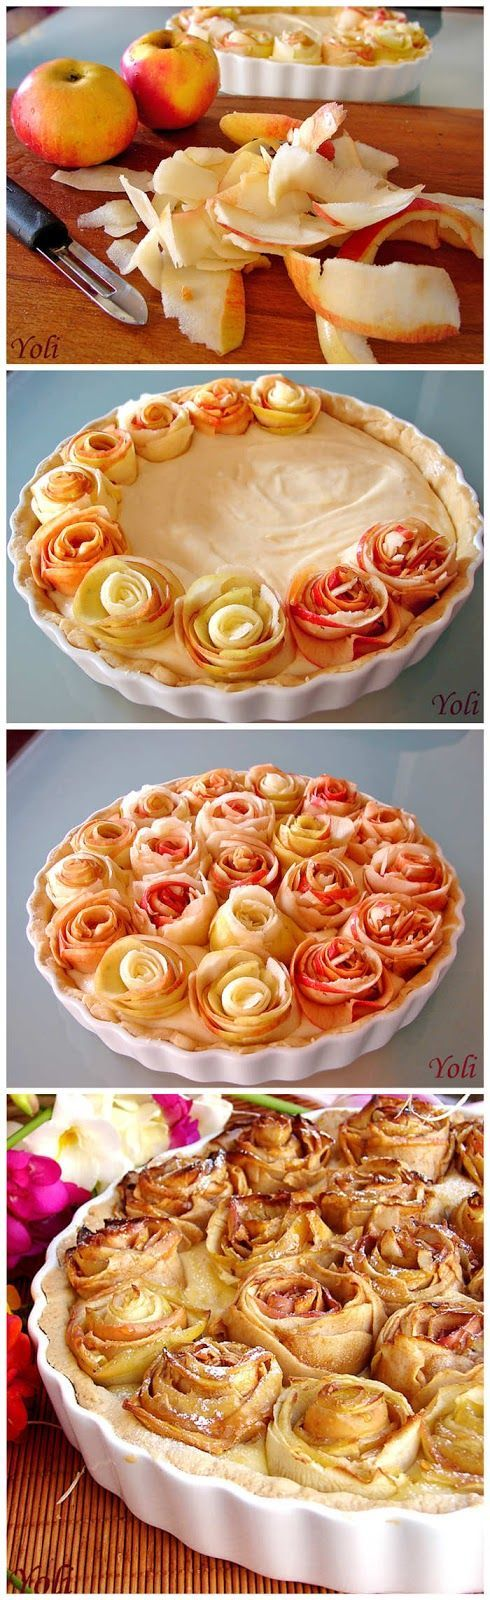 Apple pie with roses - Joybx